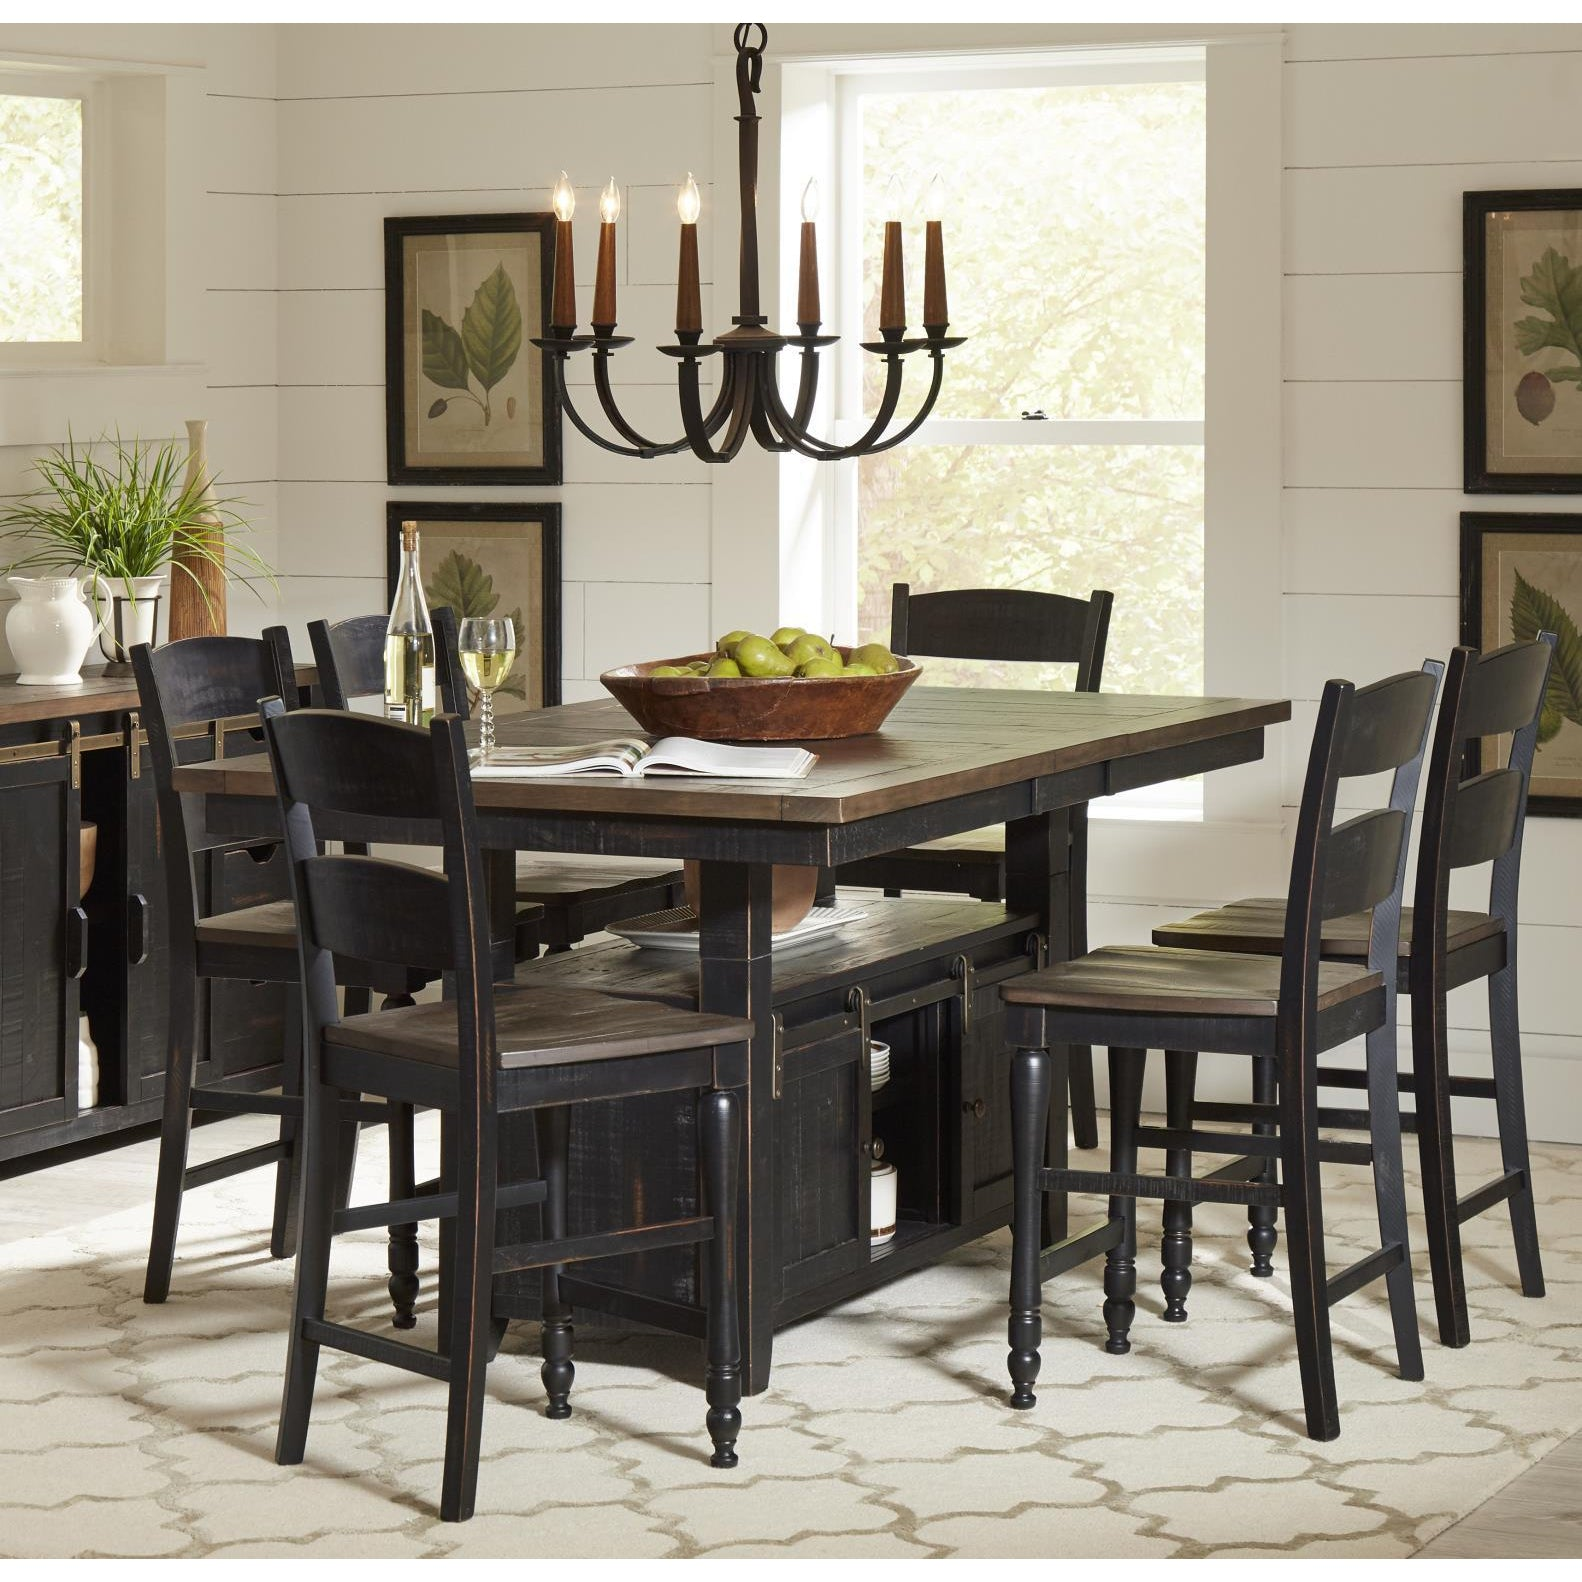 Urban Loft 7-Piece Hi-Lo Adjustable Height Dining Set